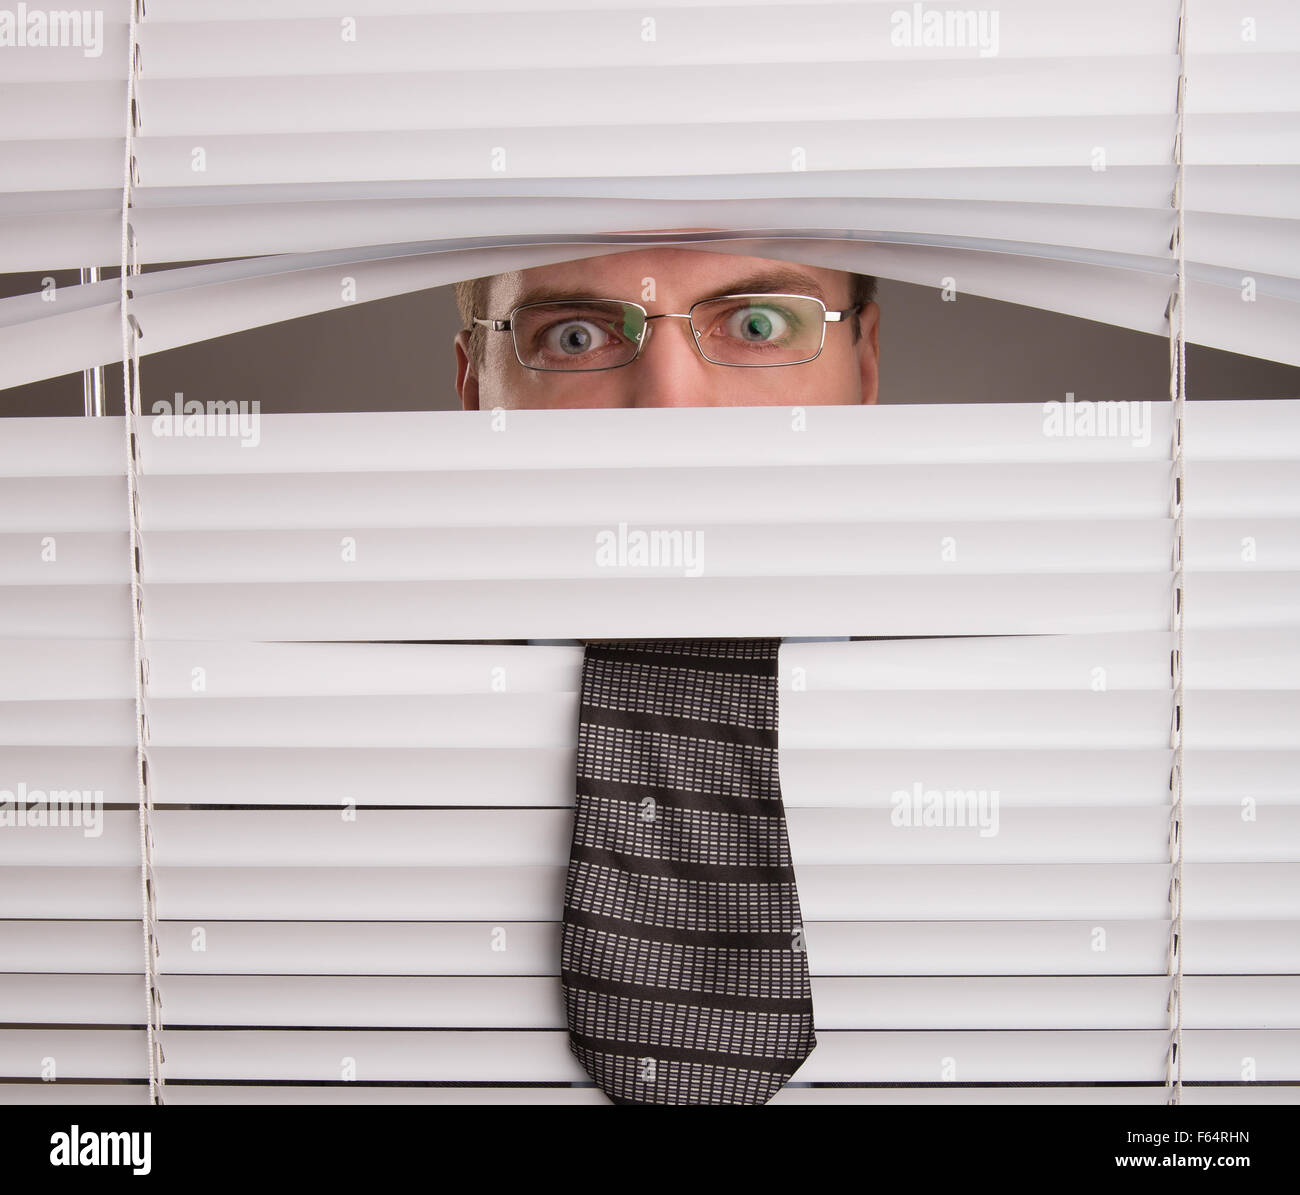 A young man looking through window blinds - Stock Image